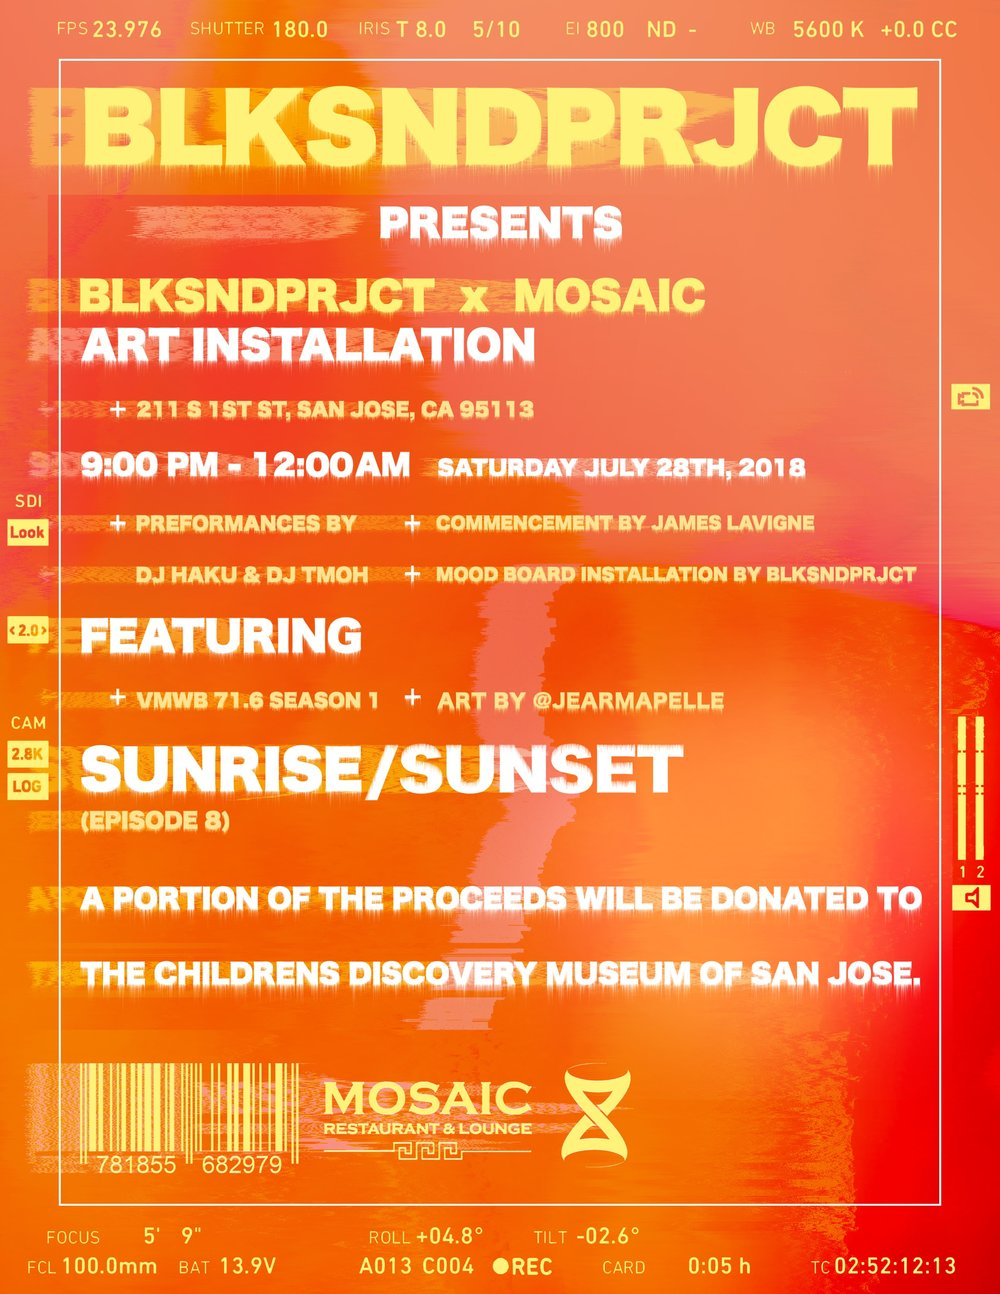 Sunrise/Sunset    Curated by James lavigne and Haku   Opening Reception:  28 July, 2018 // 9pm-12am   Mosaic Restaurant & Lounge   211 S 1st St San Jose, CA 95113